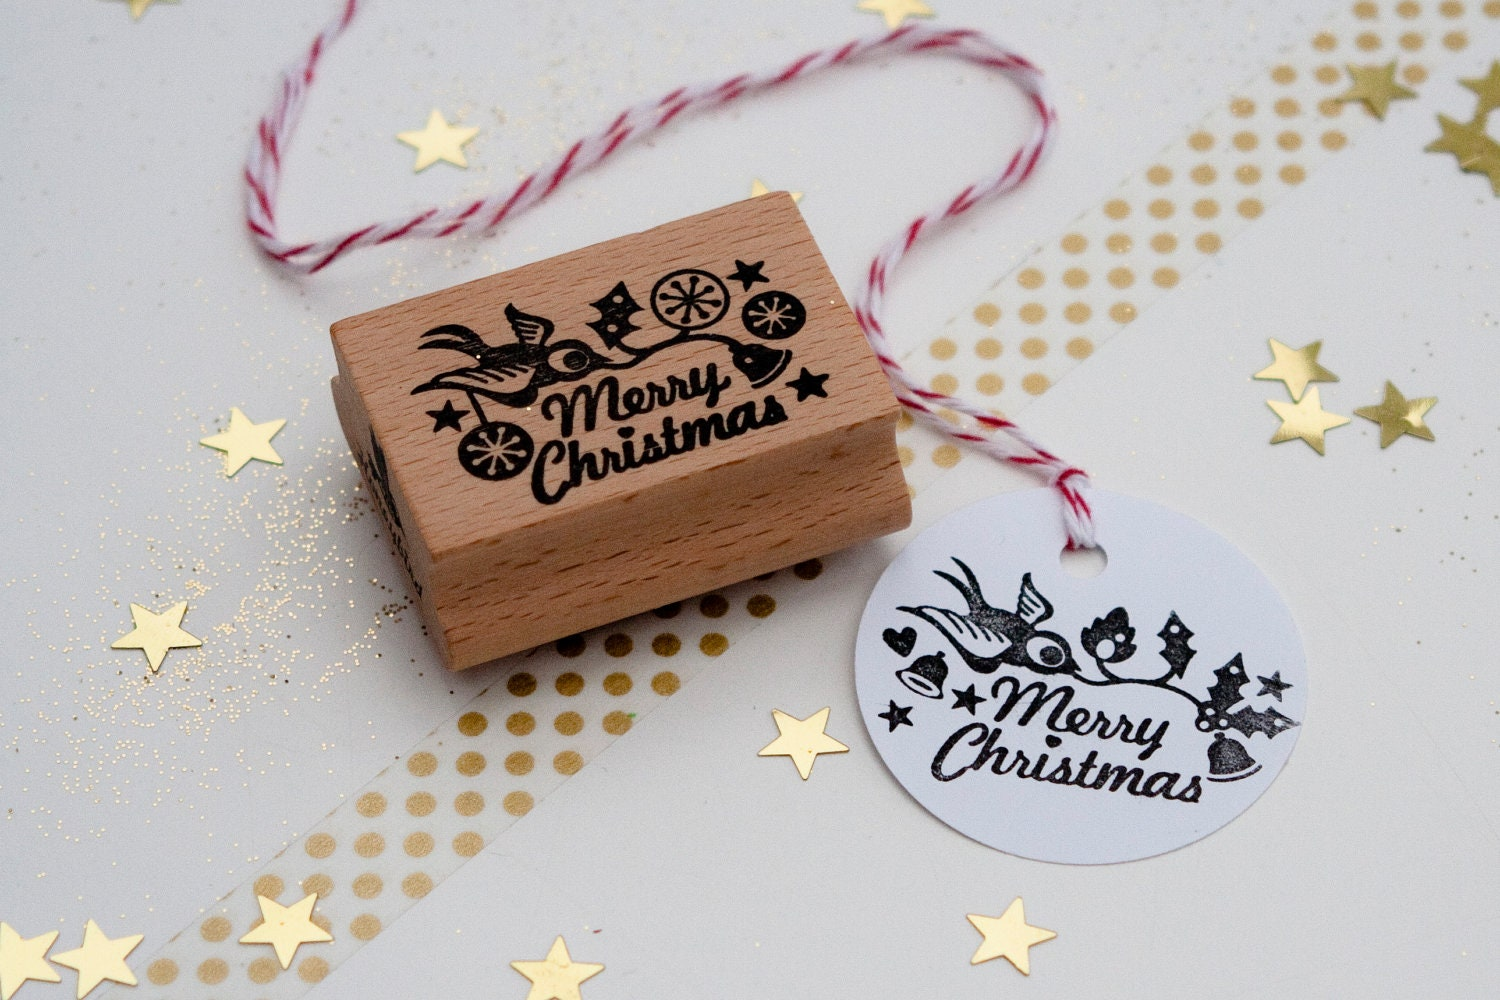 Merry Christmas Rubber Stamp by Miss Honeybird